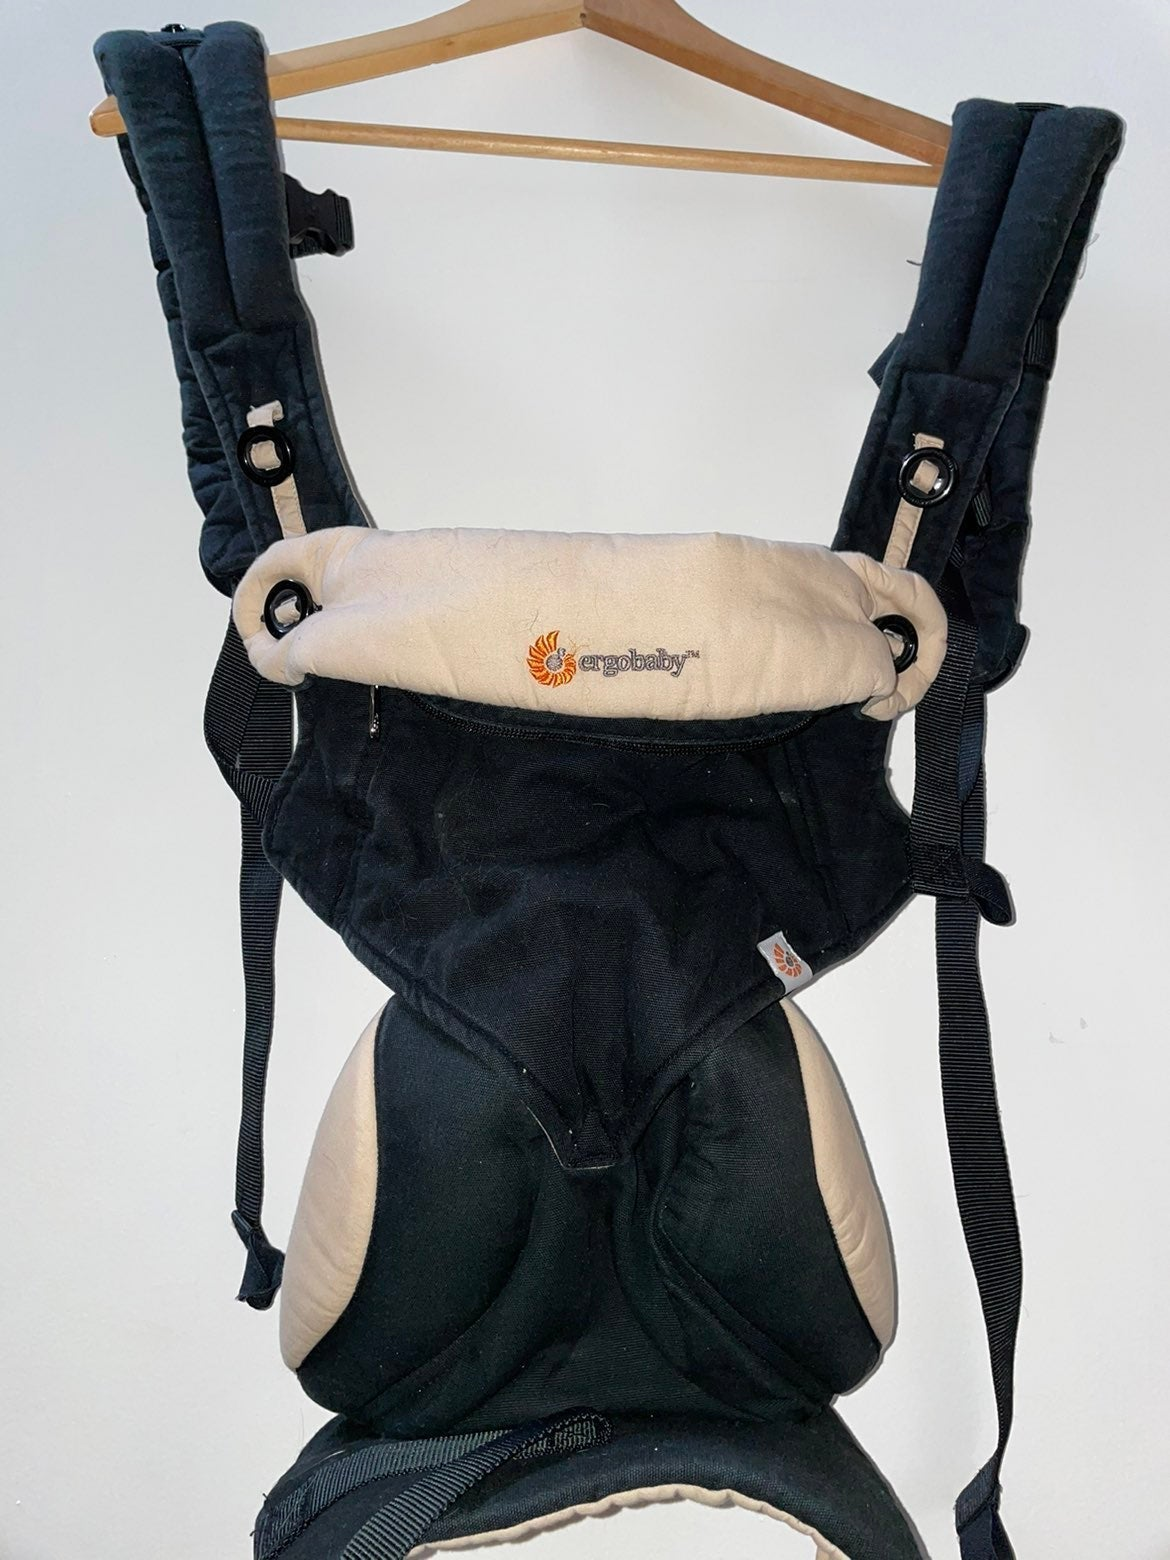 Infant Insert with ErgoBaby 360 Carrier